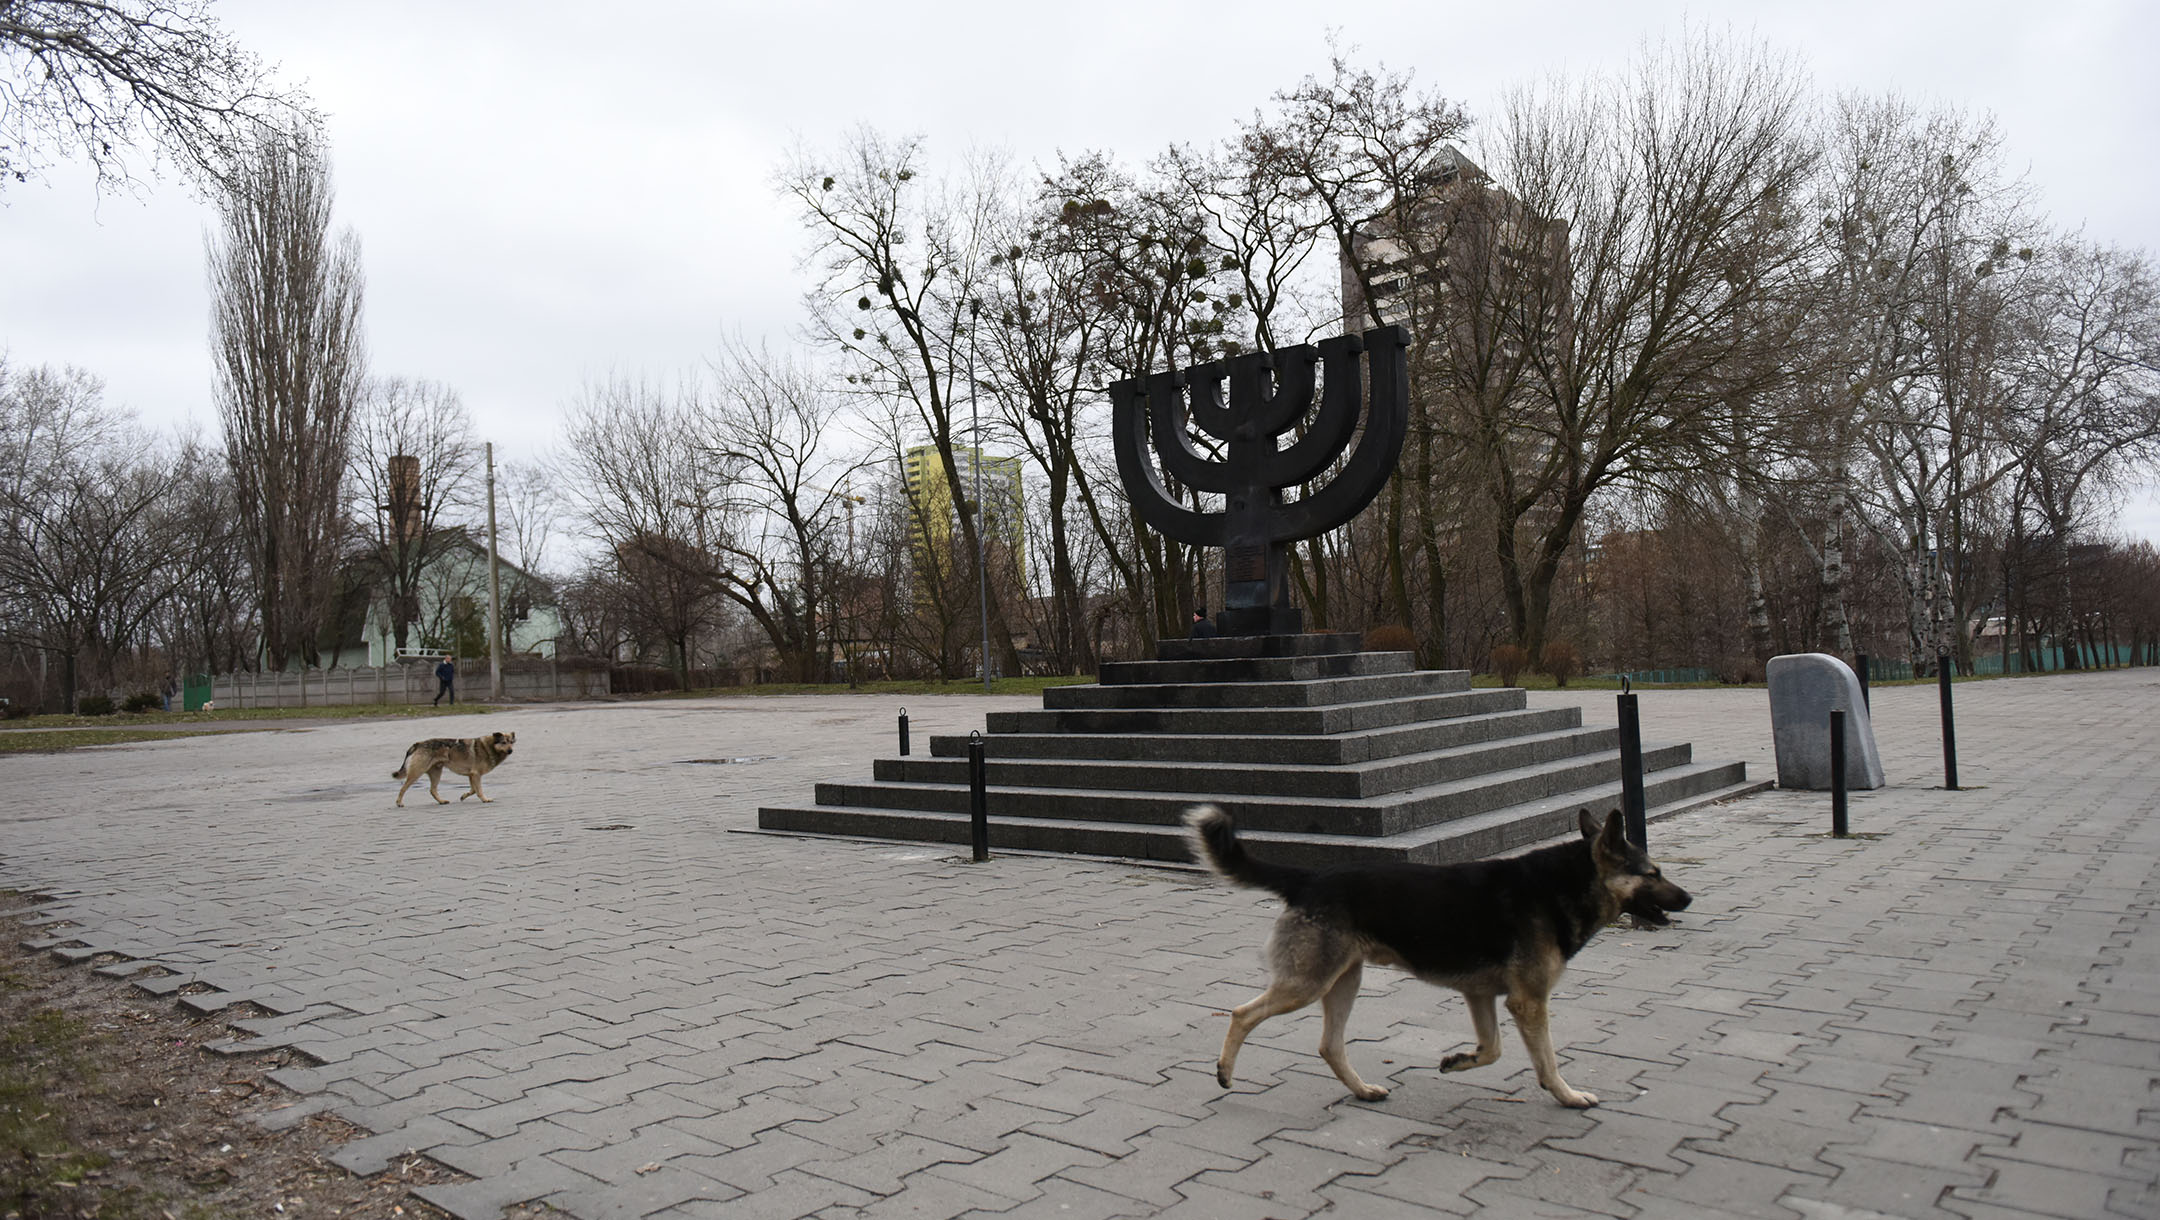 Stray dogs roam the Babyn Yar monument on March 14, 2016 in Kiev, where Nazis and local collaborators murdered 30,000 Jews in 1941. (Cnaan Liphshiz)